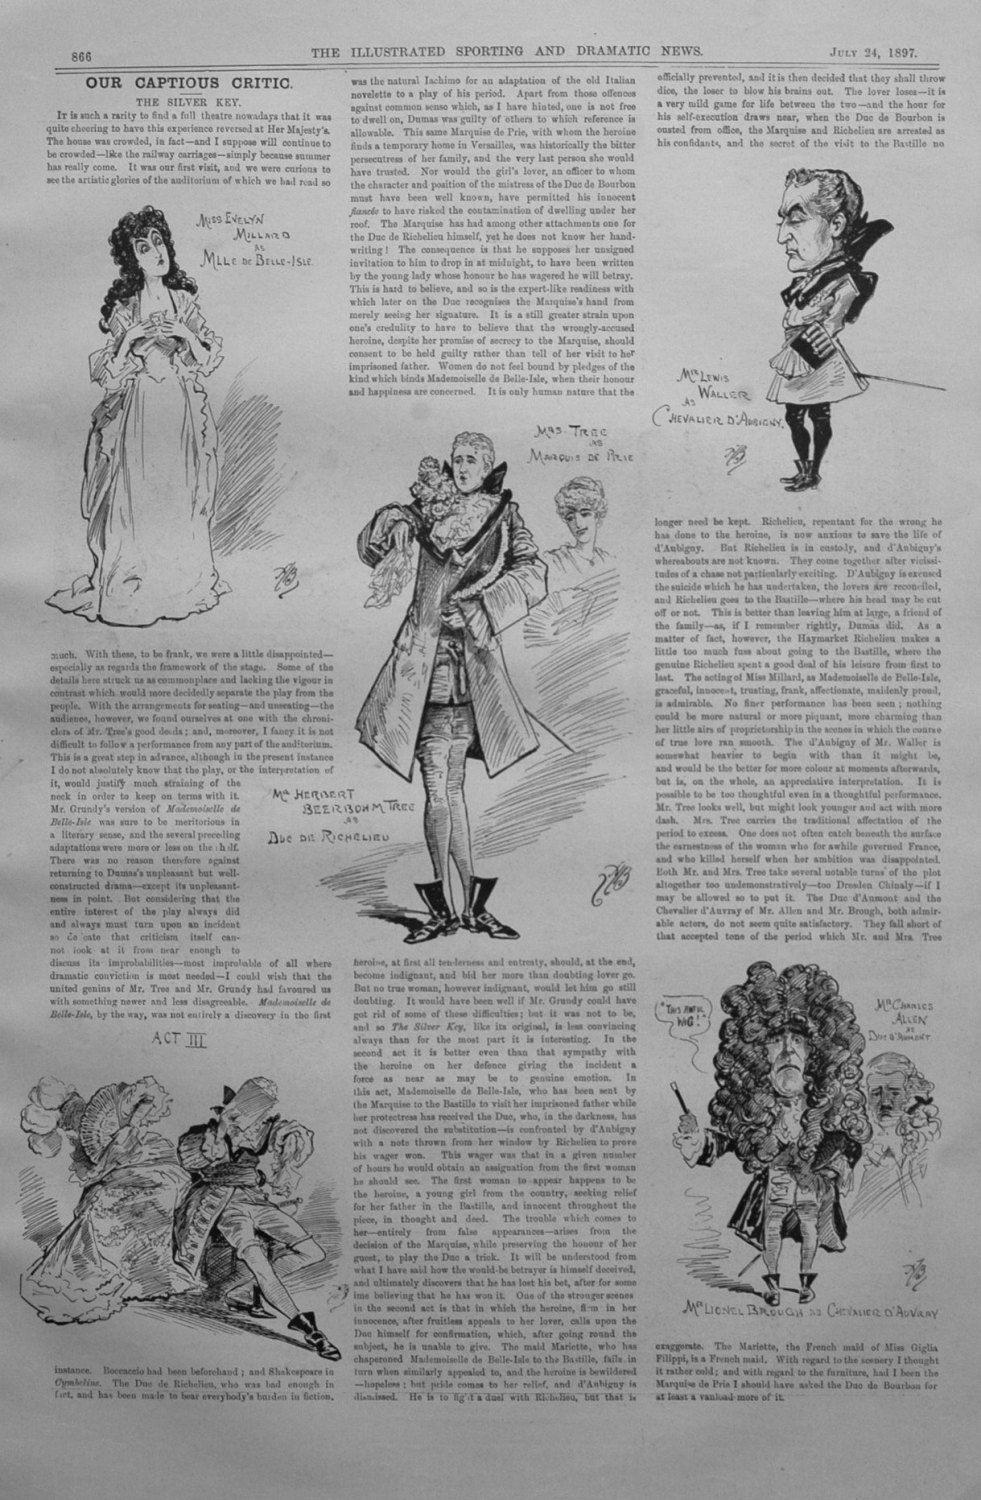 Our Captious Critic, July 24th 1897.